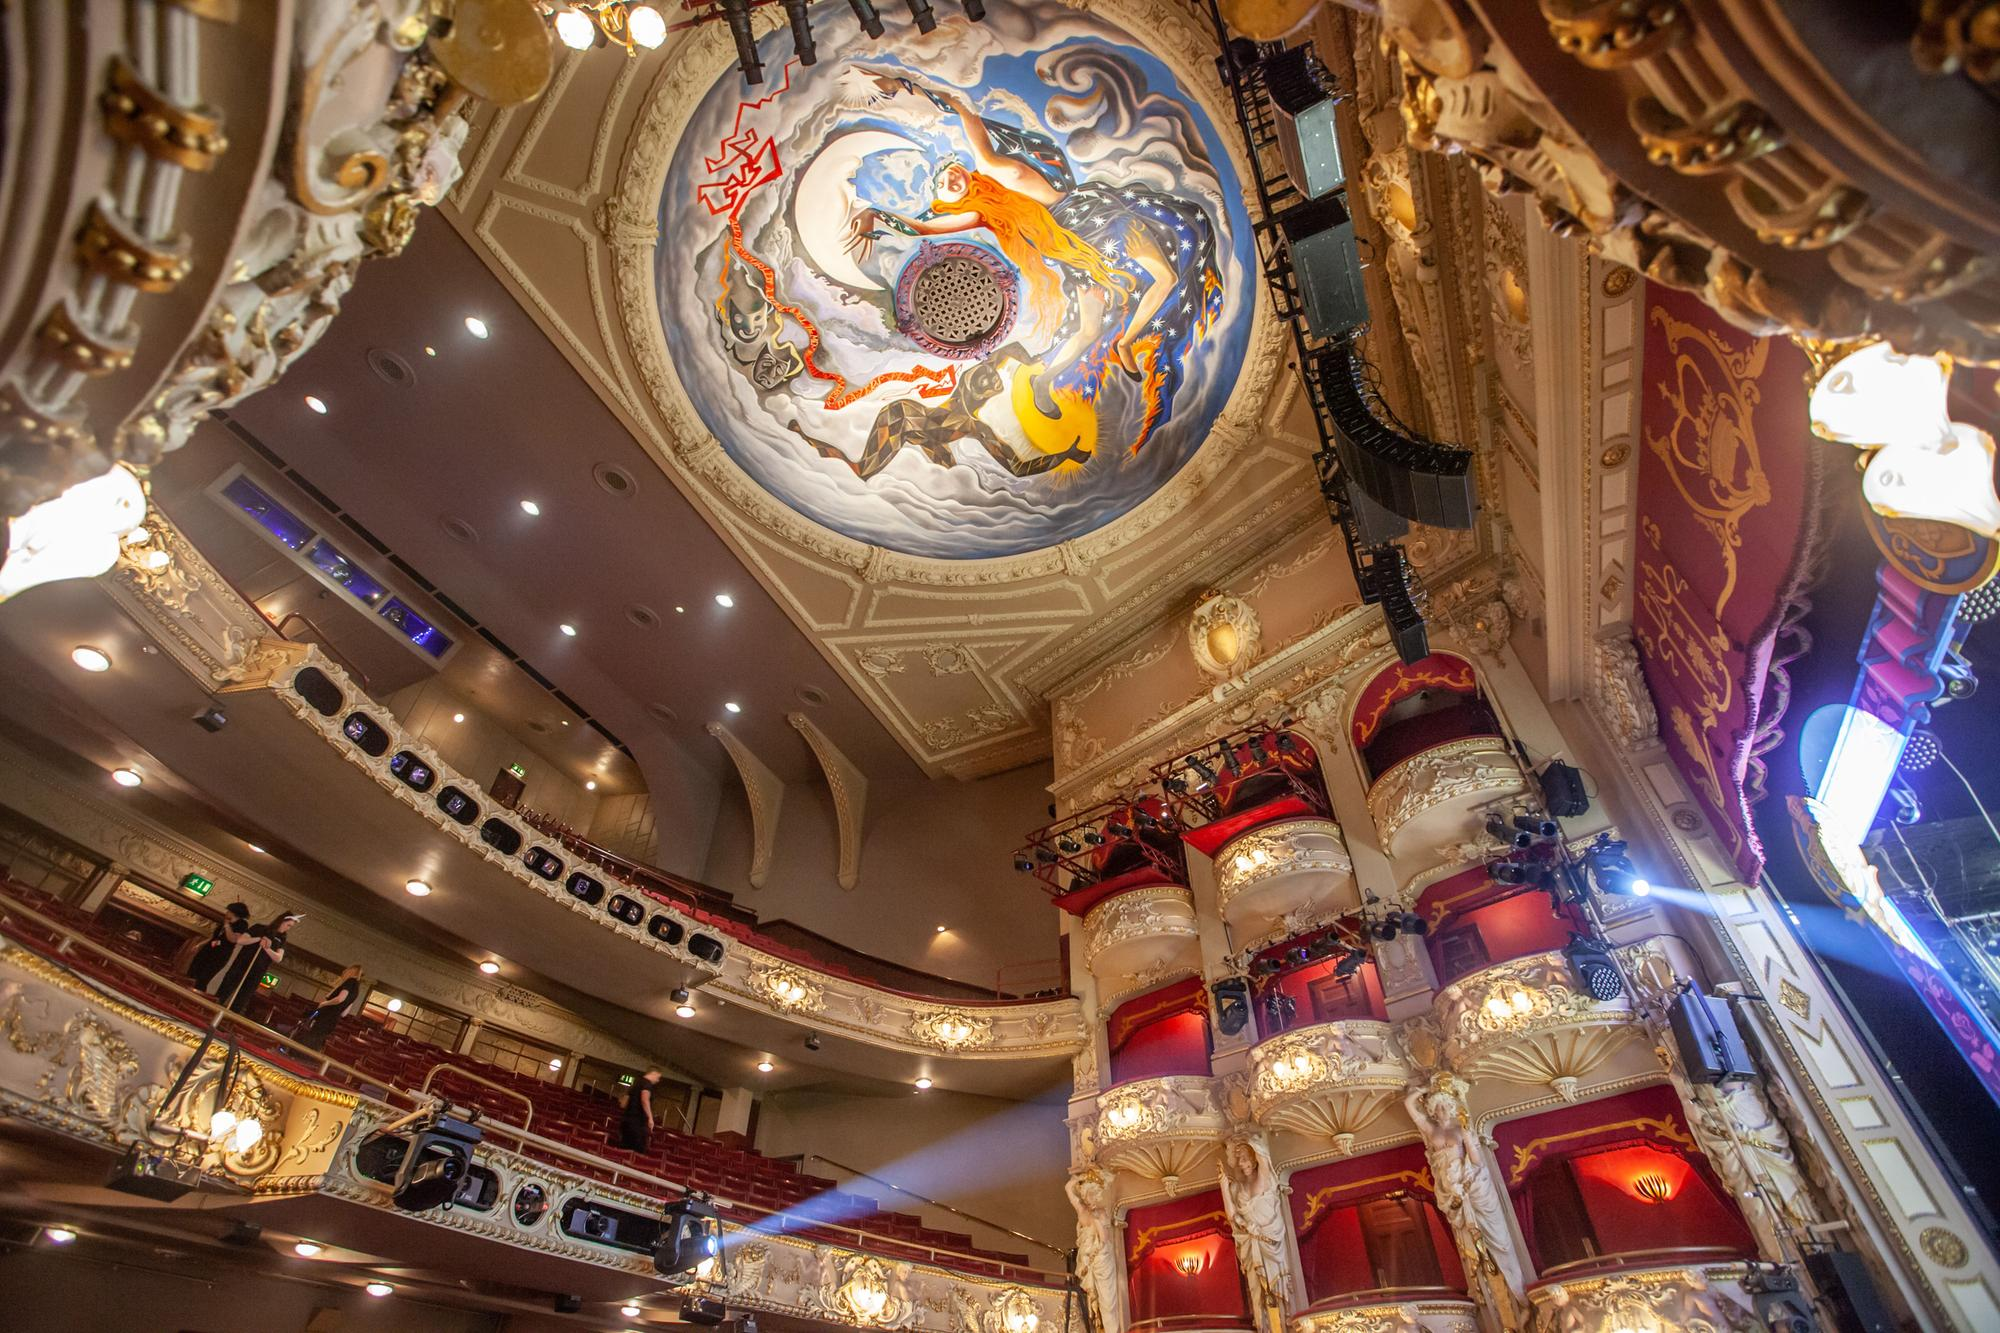 Campaign to bring Edinburgh theatres back from the brink supported by 10,000 people in the space of a week